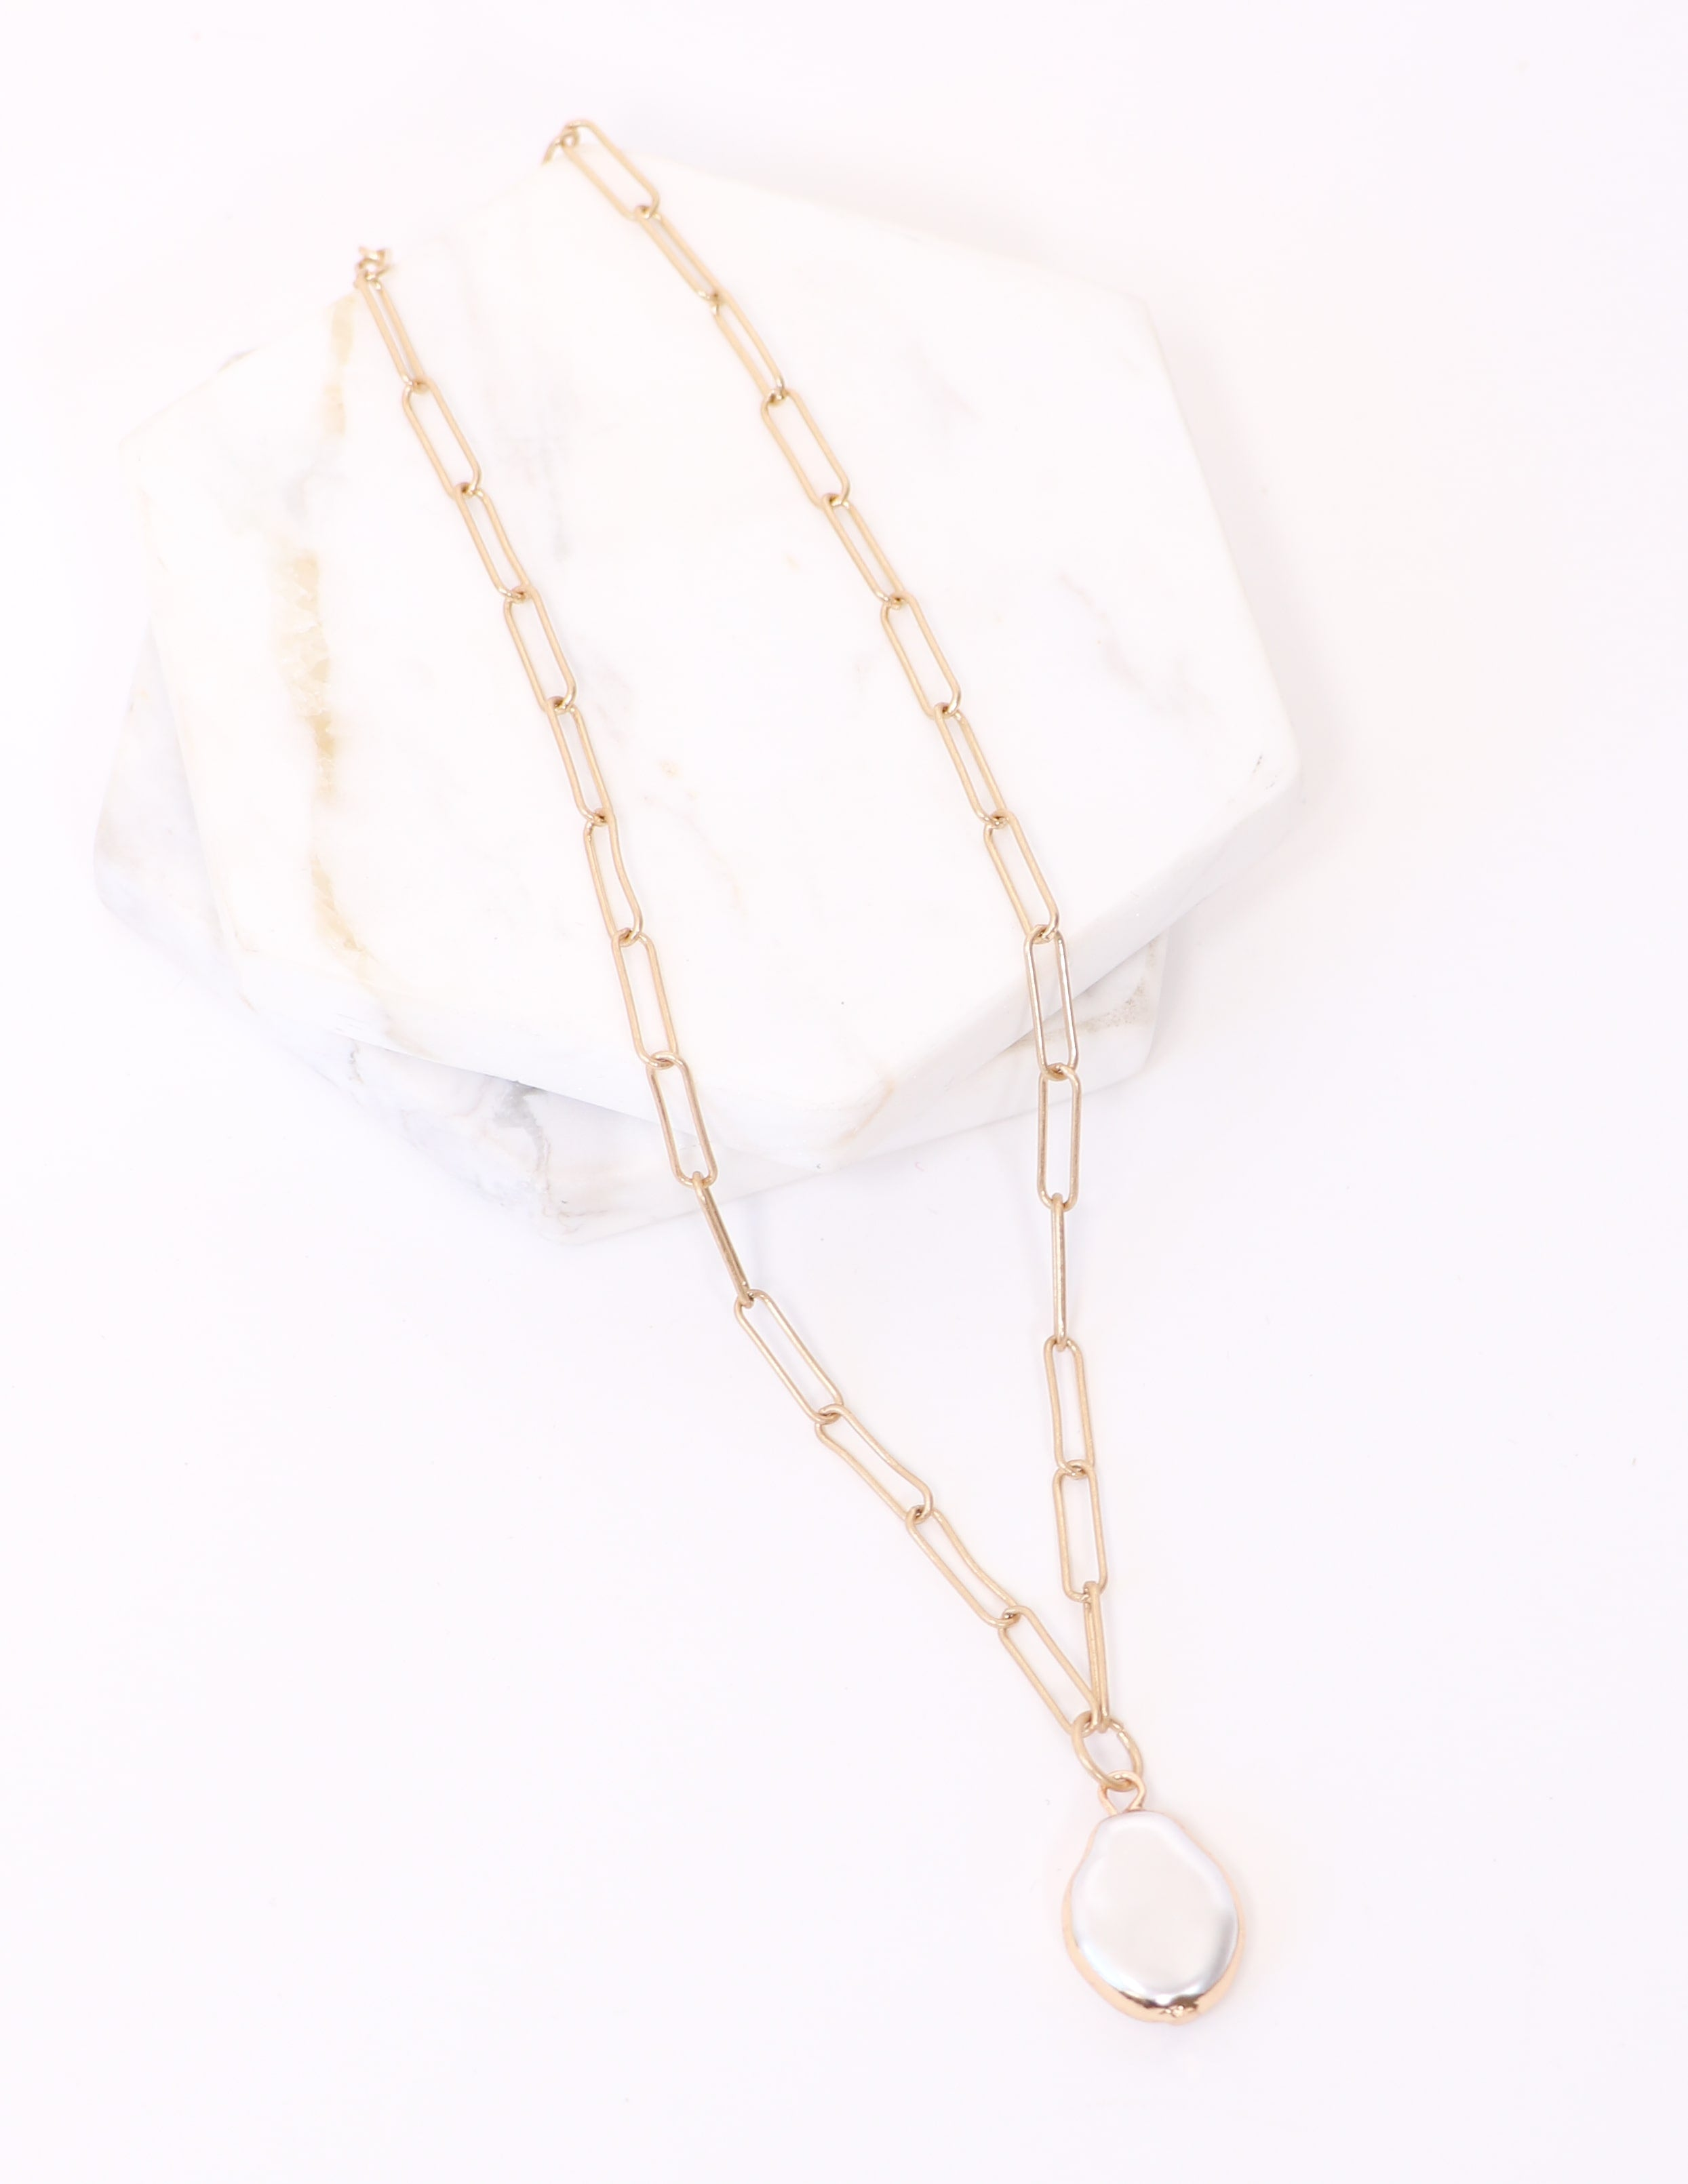 Gold chain necklace with pearl inspired pendant - elle bleu shoes